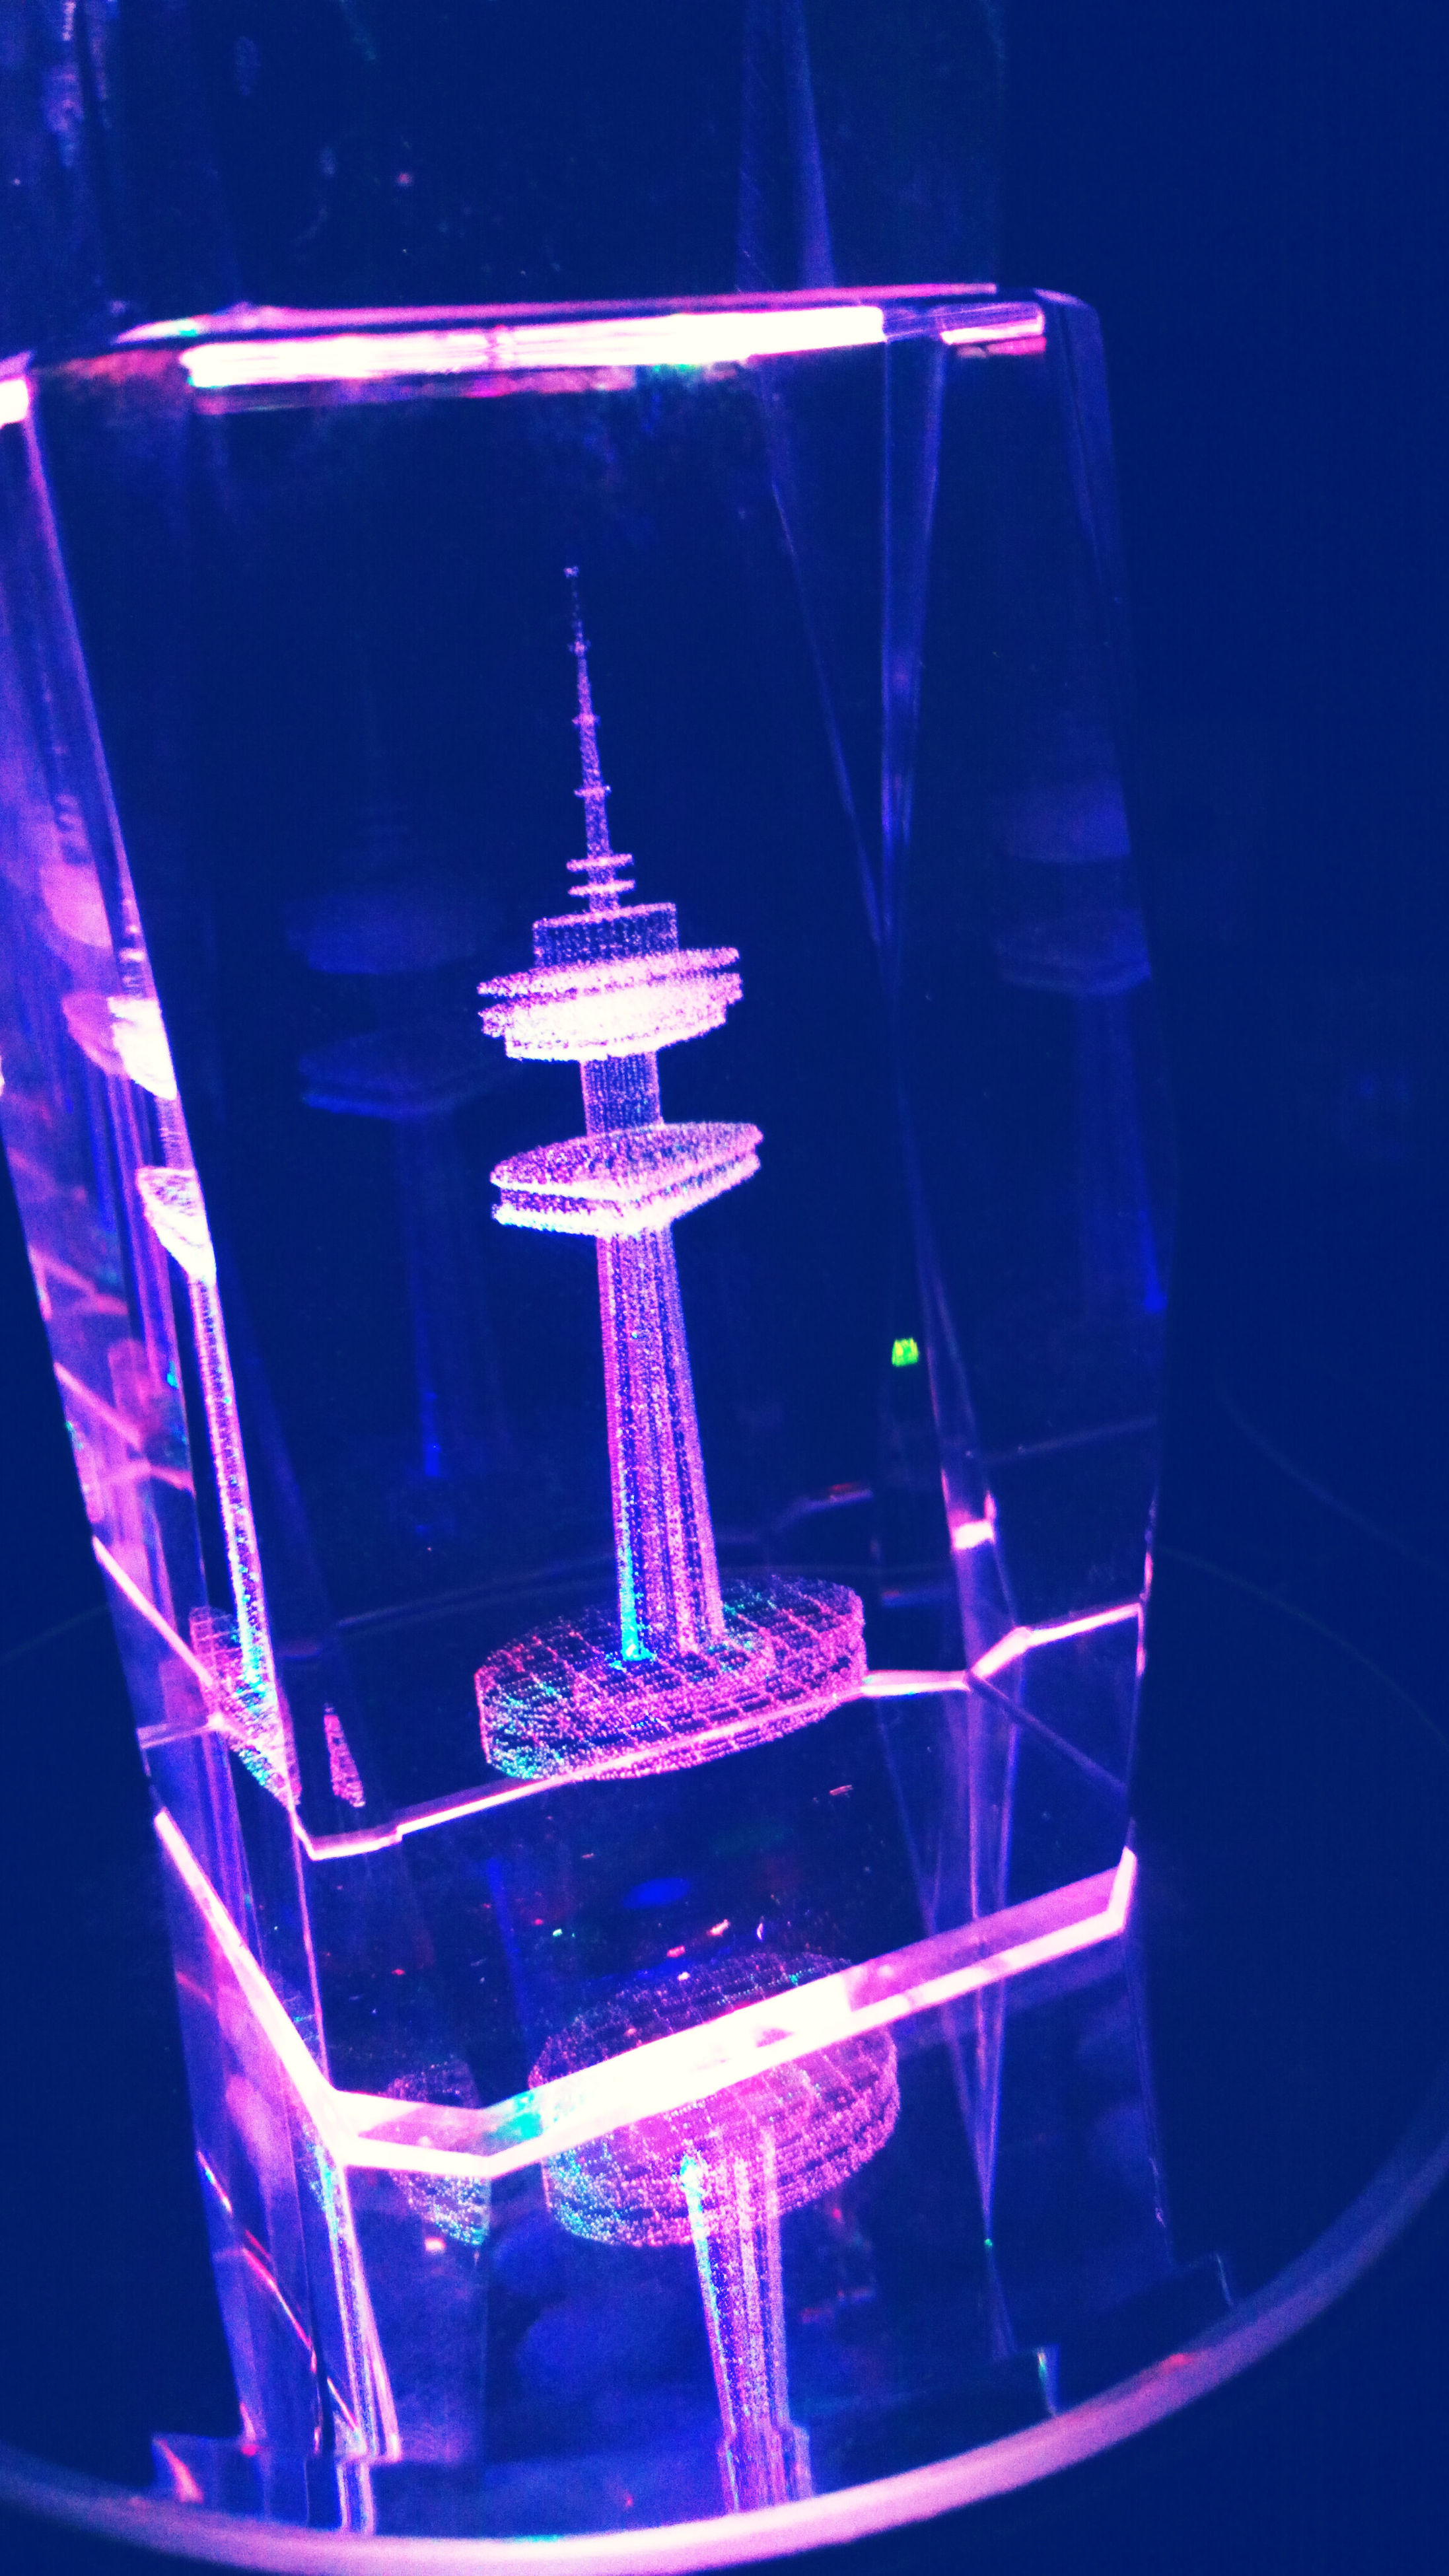 illuminated, night, low angle view, blue, architecture, glass - material, built structure, building exterior, lighting equipment, transparent, tall - high, tower, city, modern, glowing, light - natural phenomenon, indoors, no people, travel, sky